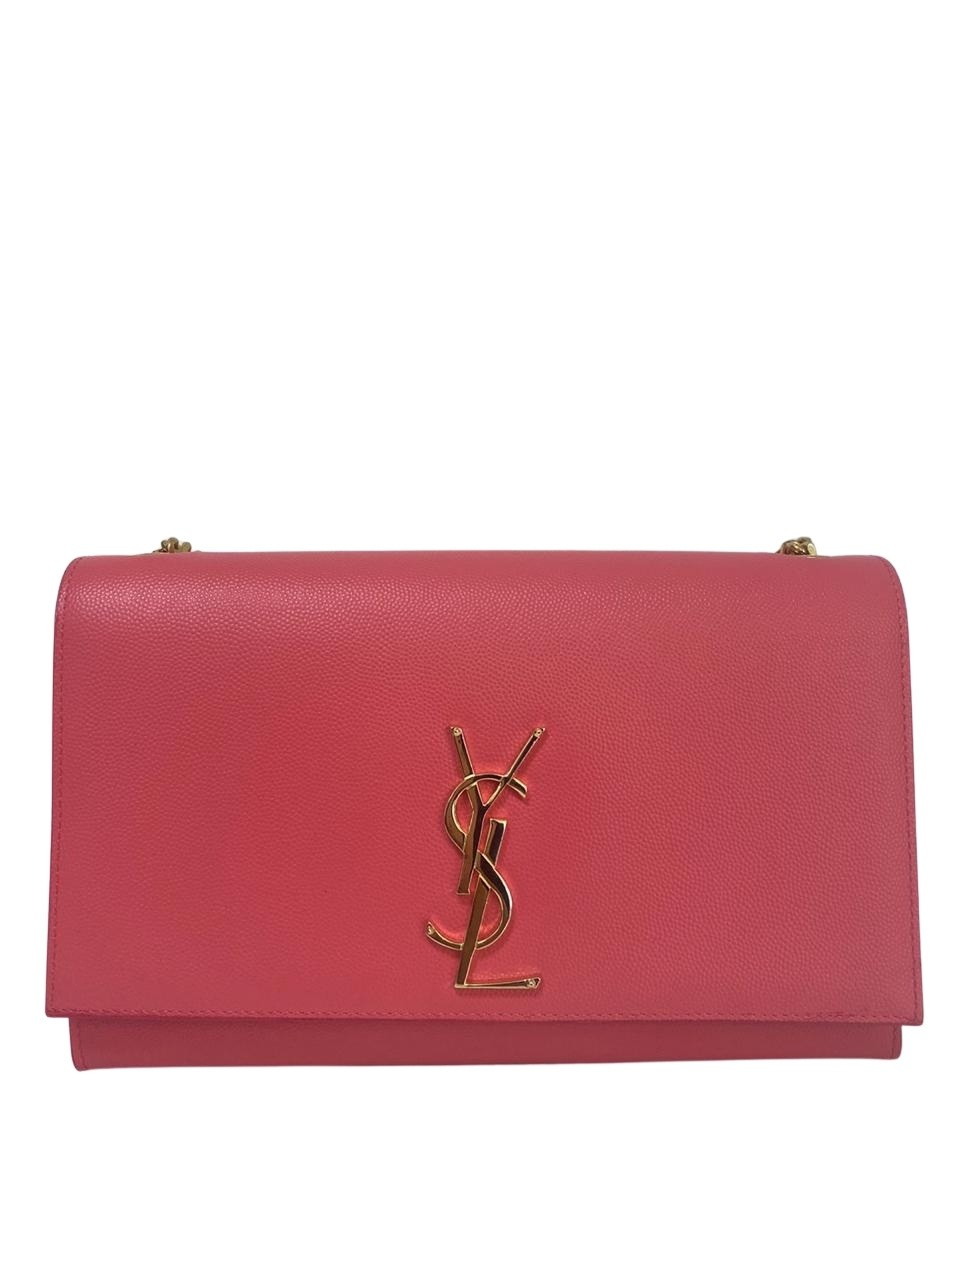 Bolsa Yves Saint Laurent Medium Kate Rosa